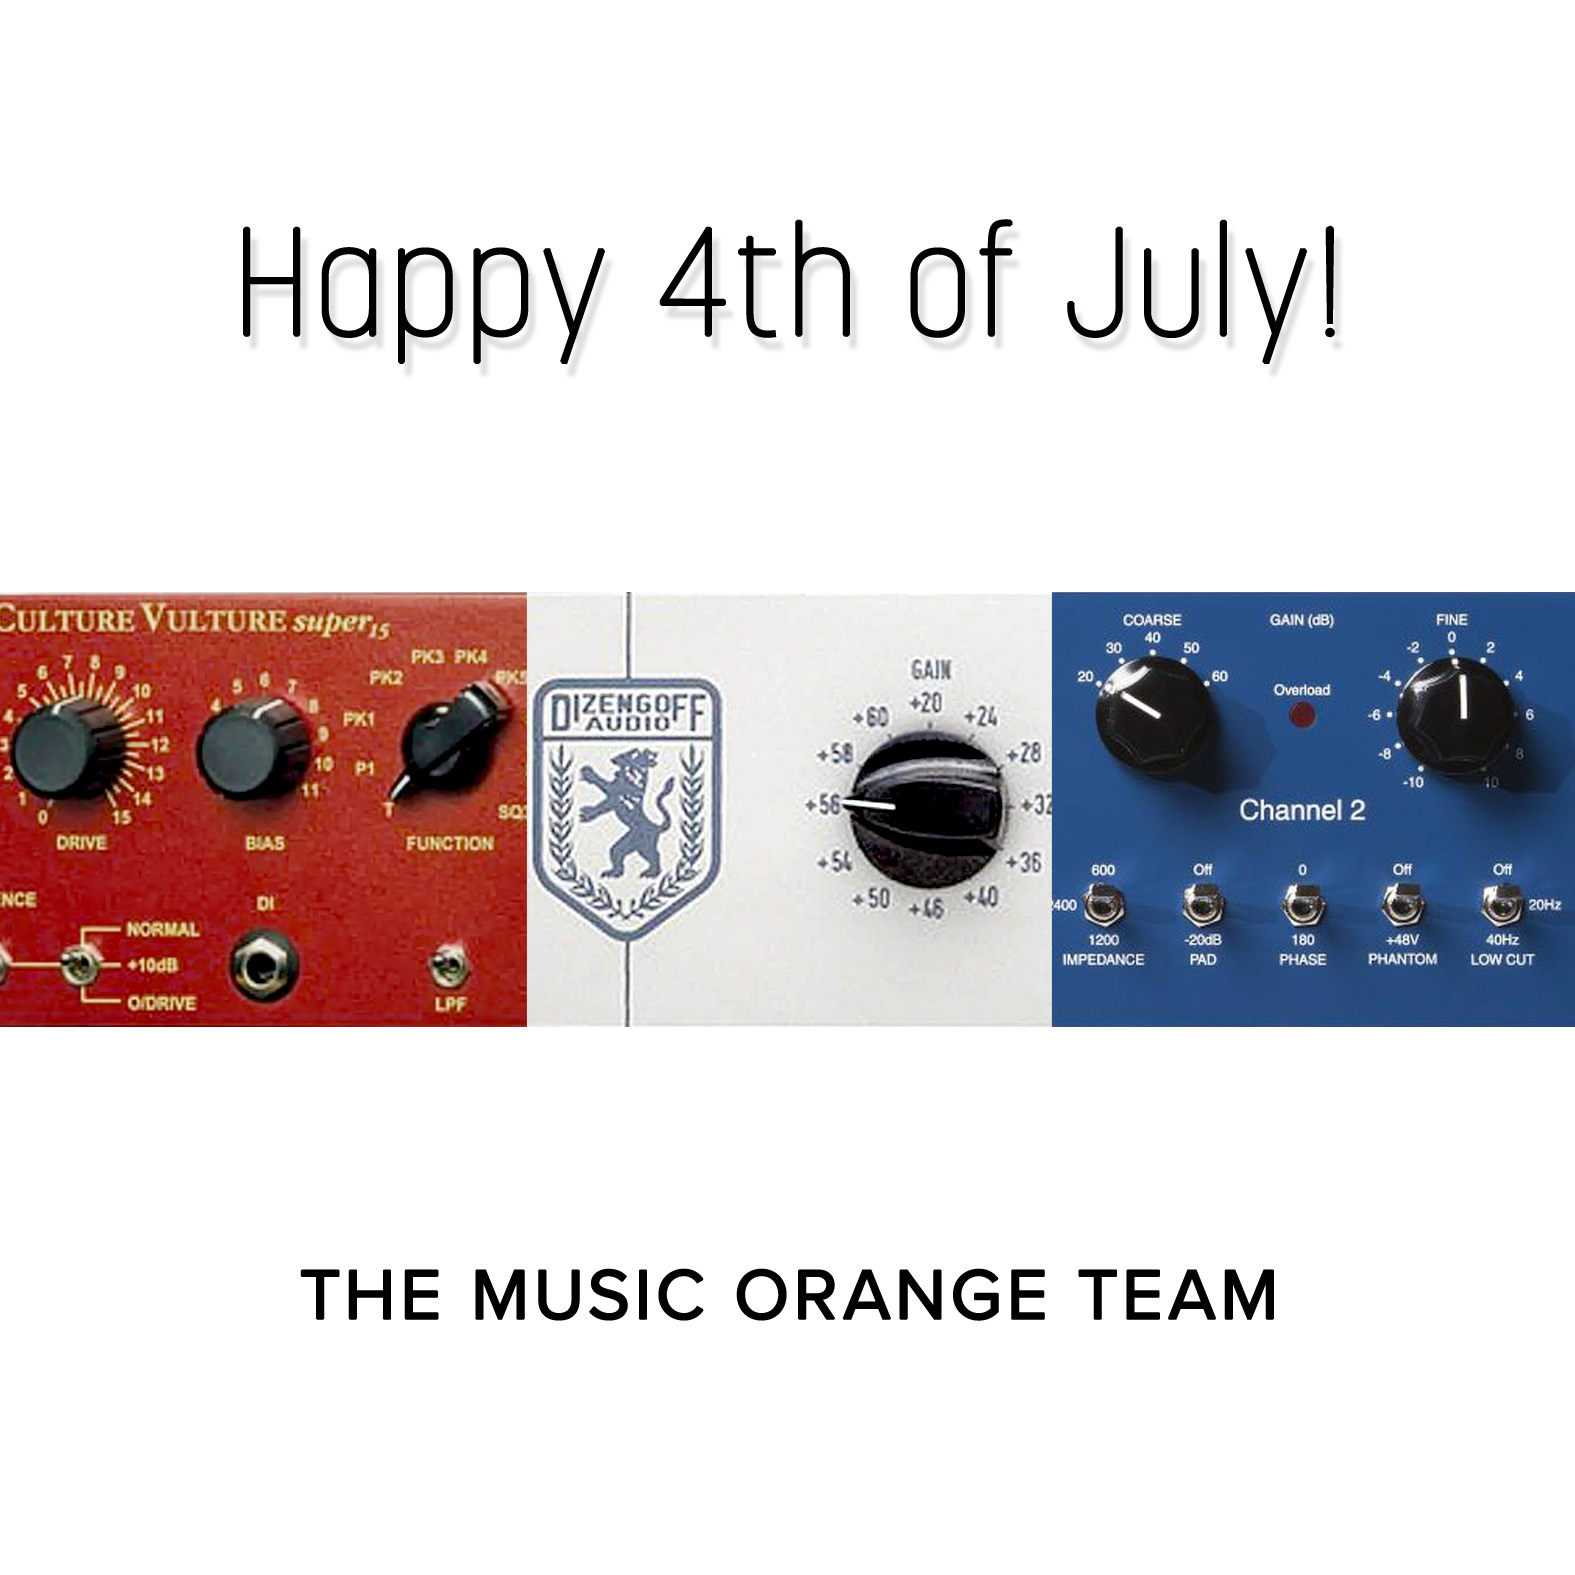 4th-of-july-music-orange.jpg